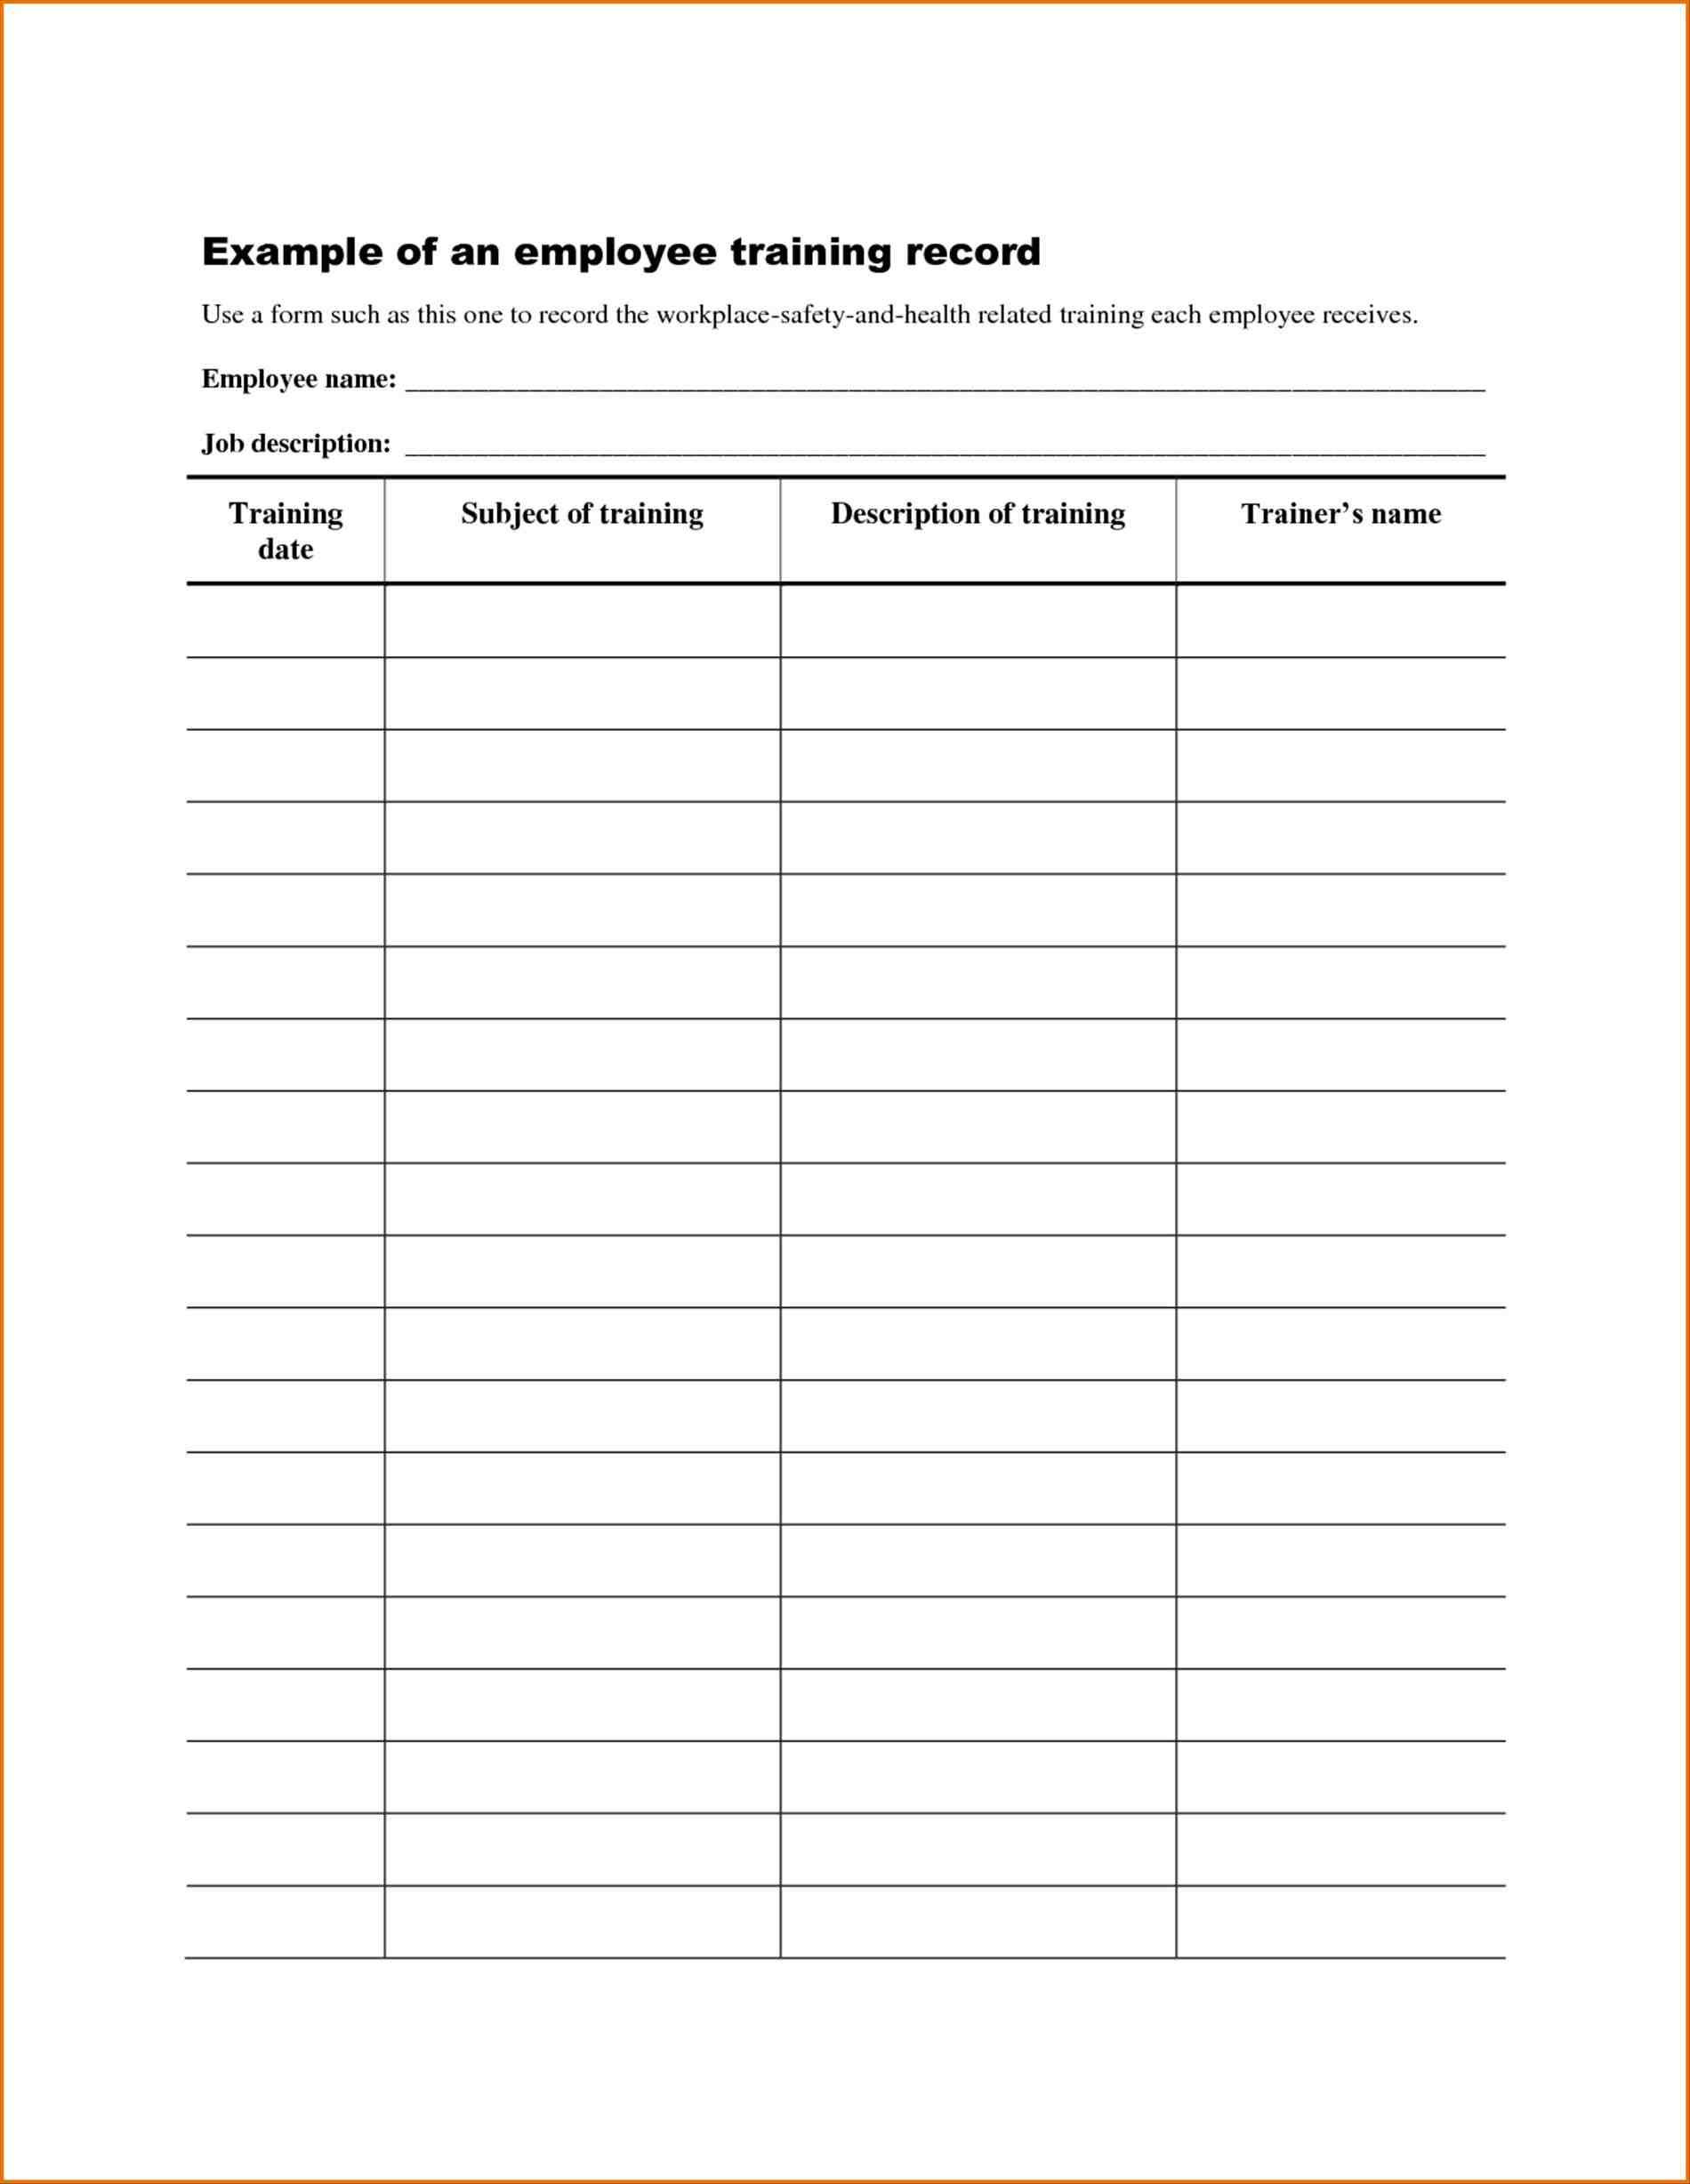 Workout Tracker Spreadsheet Within Workout Log Template Excel Inspirational Employee Training Records